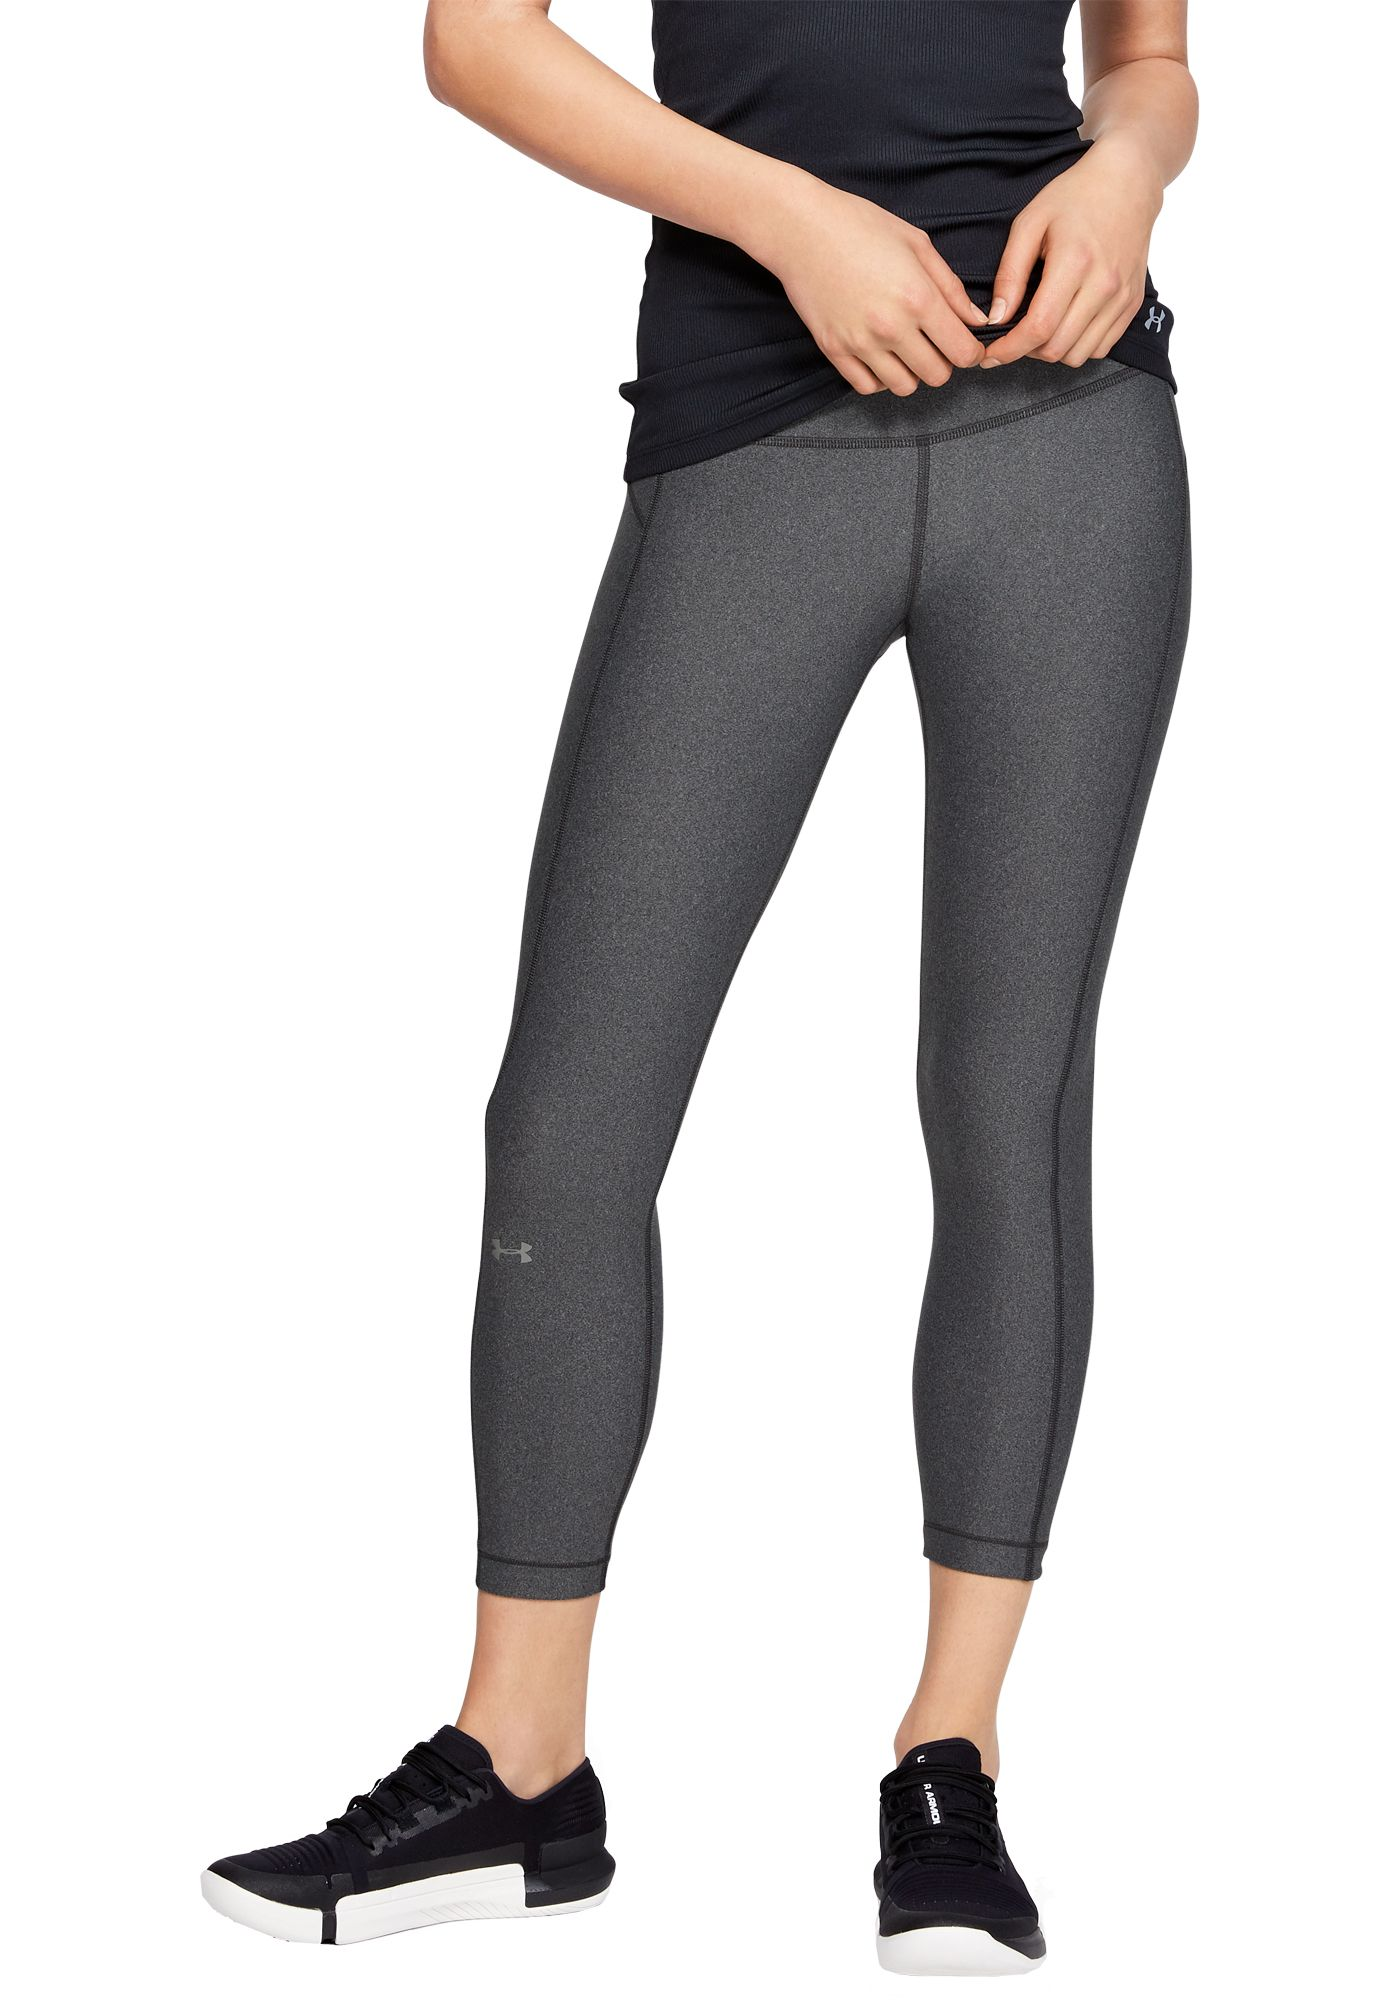 Under Armour Women's HeatGear Armour Hi-Rise Ankle Crop Leggings